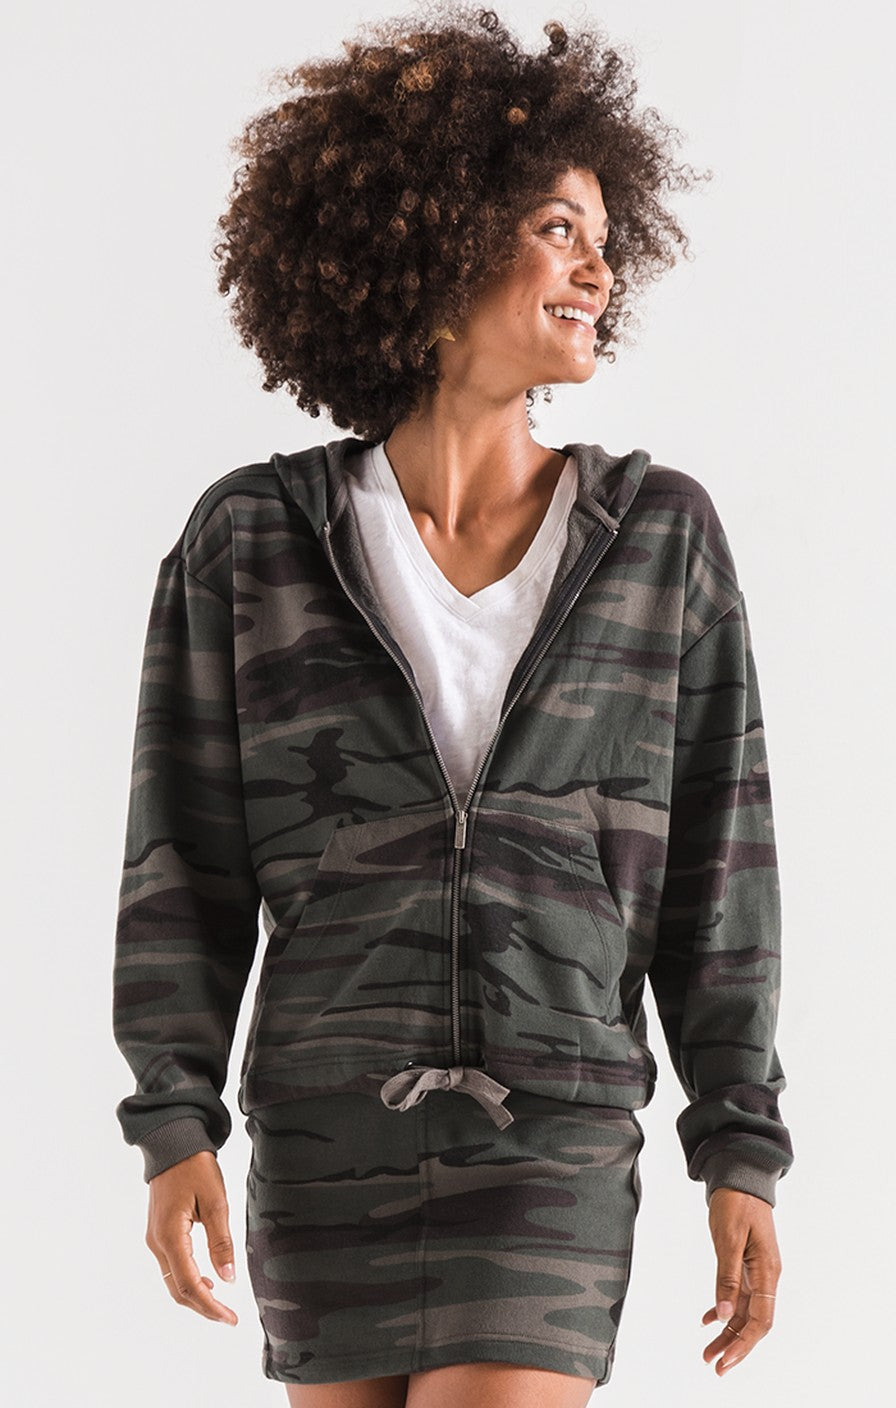 The Camo Knit Hooded Jacket